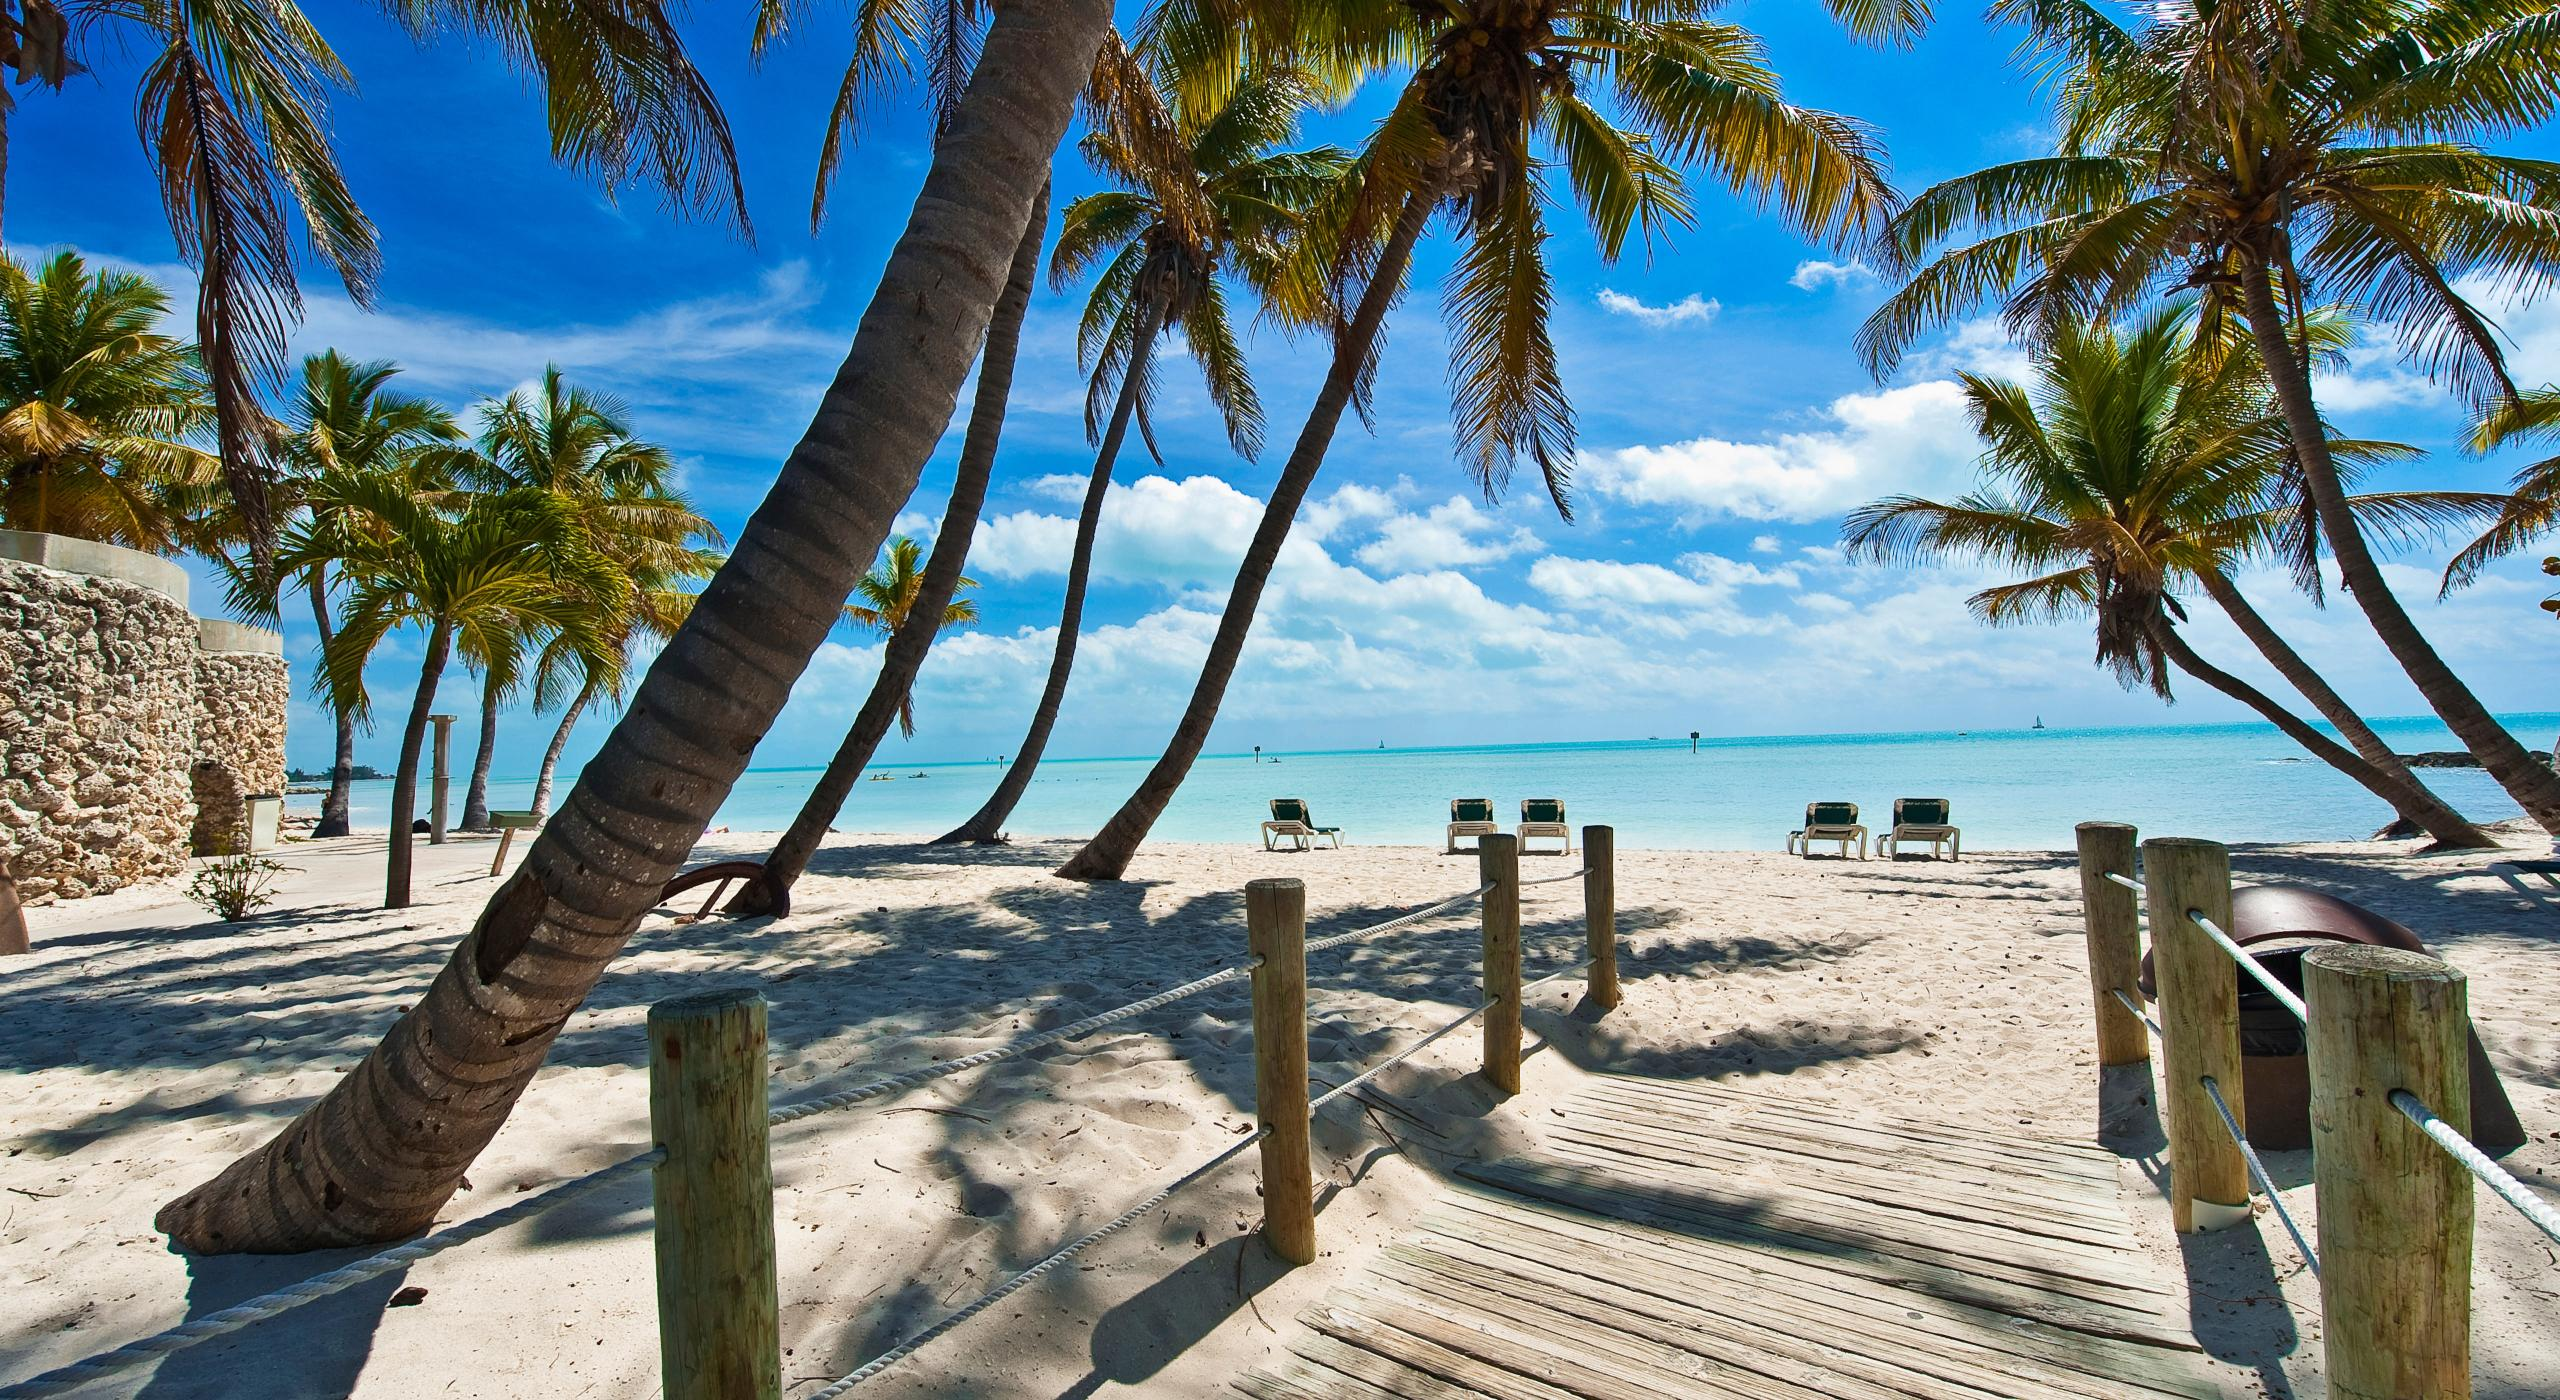 Les Keys de Floride et Key West | Visit The USA